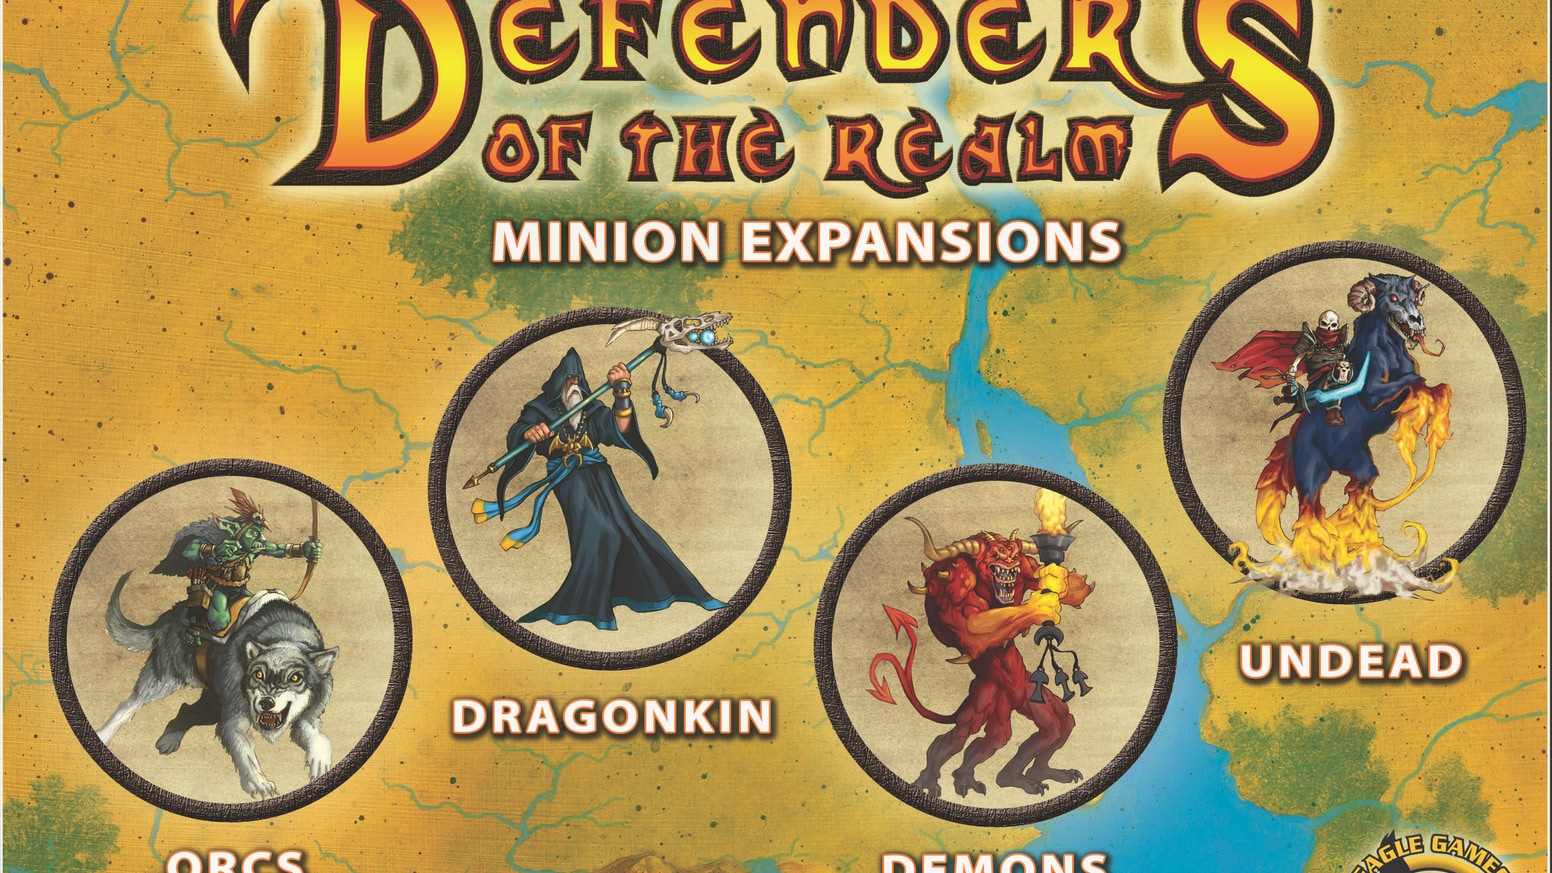 Defenders of the Realm: Minions introduces four new expansions; adds upgraded minions & increasing challenges to this cooperative game!